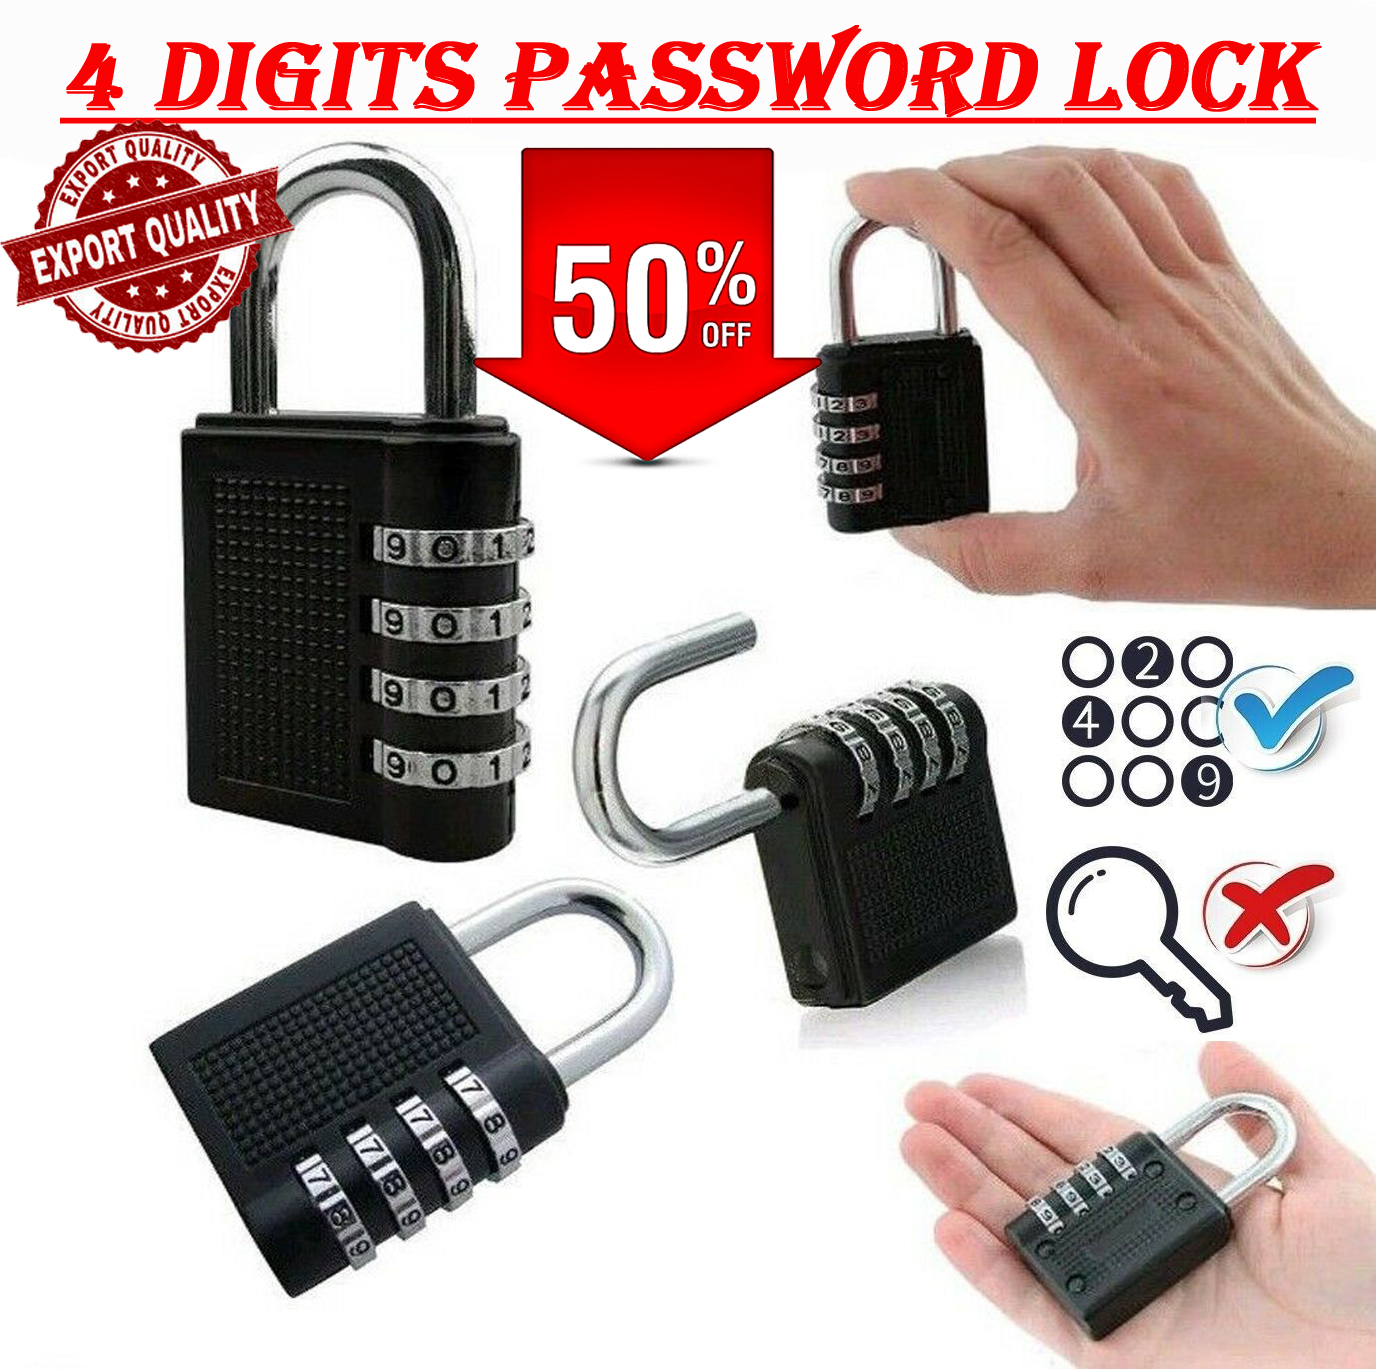 4 Digit Resettable Code Combination Lock Portable Waterproof Keyless Smart Padlock For Suitcase Gym School Locker Luggage Travel Bag Bicycle Scooter Tool Box Door Safety Security Protector Locks Anti Theft Dial Number Password Padlocks High Quality Big